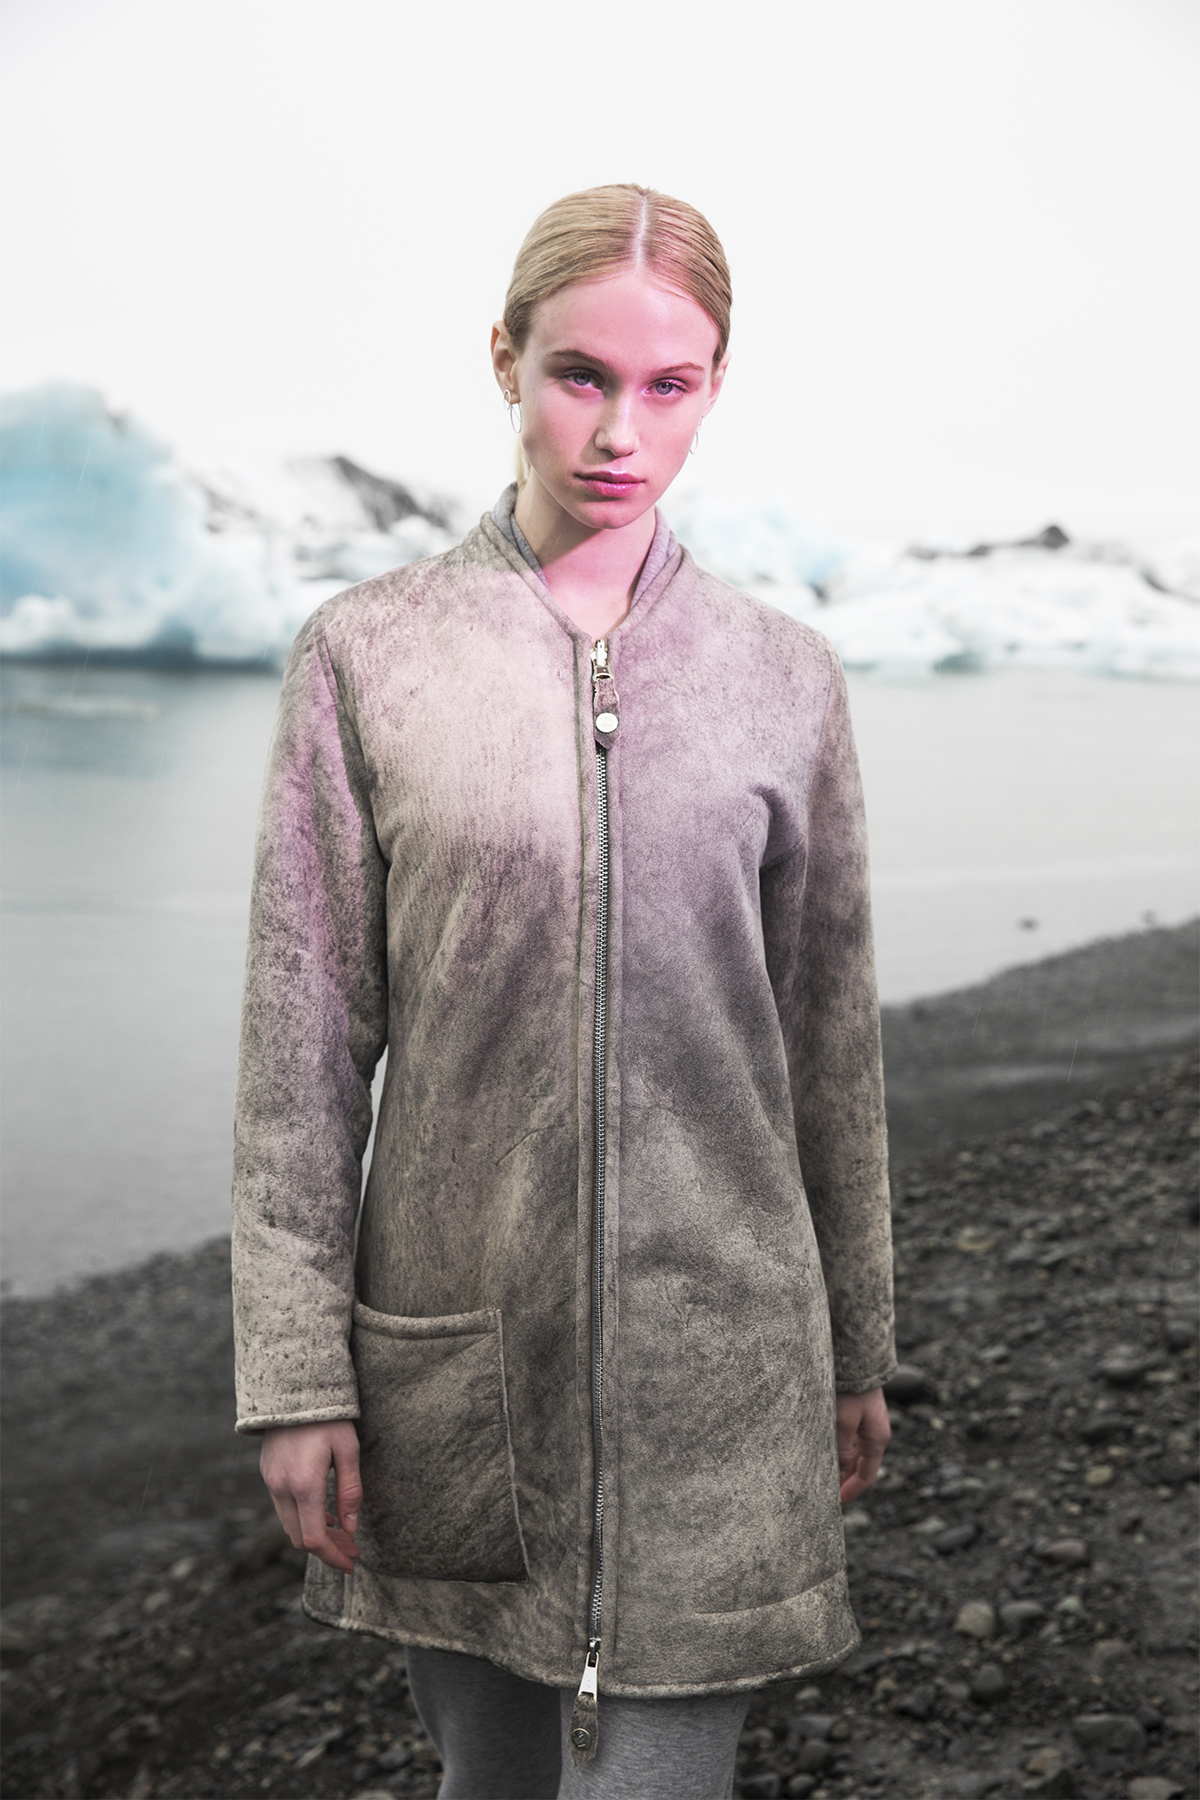 Step One - Apply a base layer. The GUDRUN is our streamlined shearling. It's reversible, cozy, sleek and a prime blank canvas for accessories.